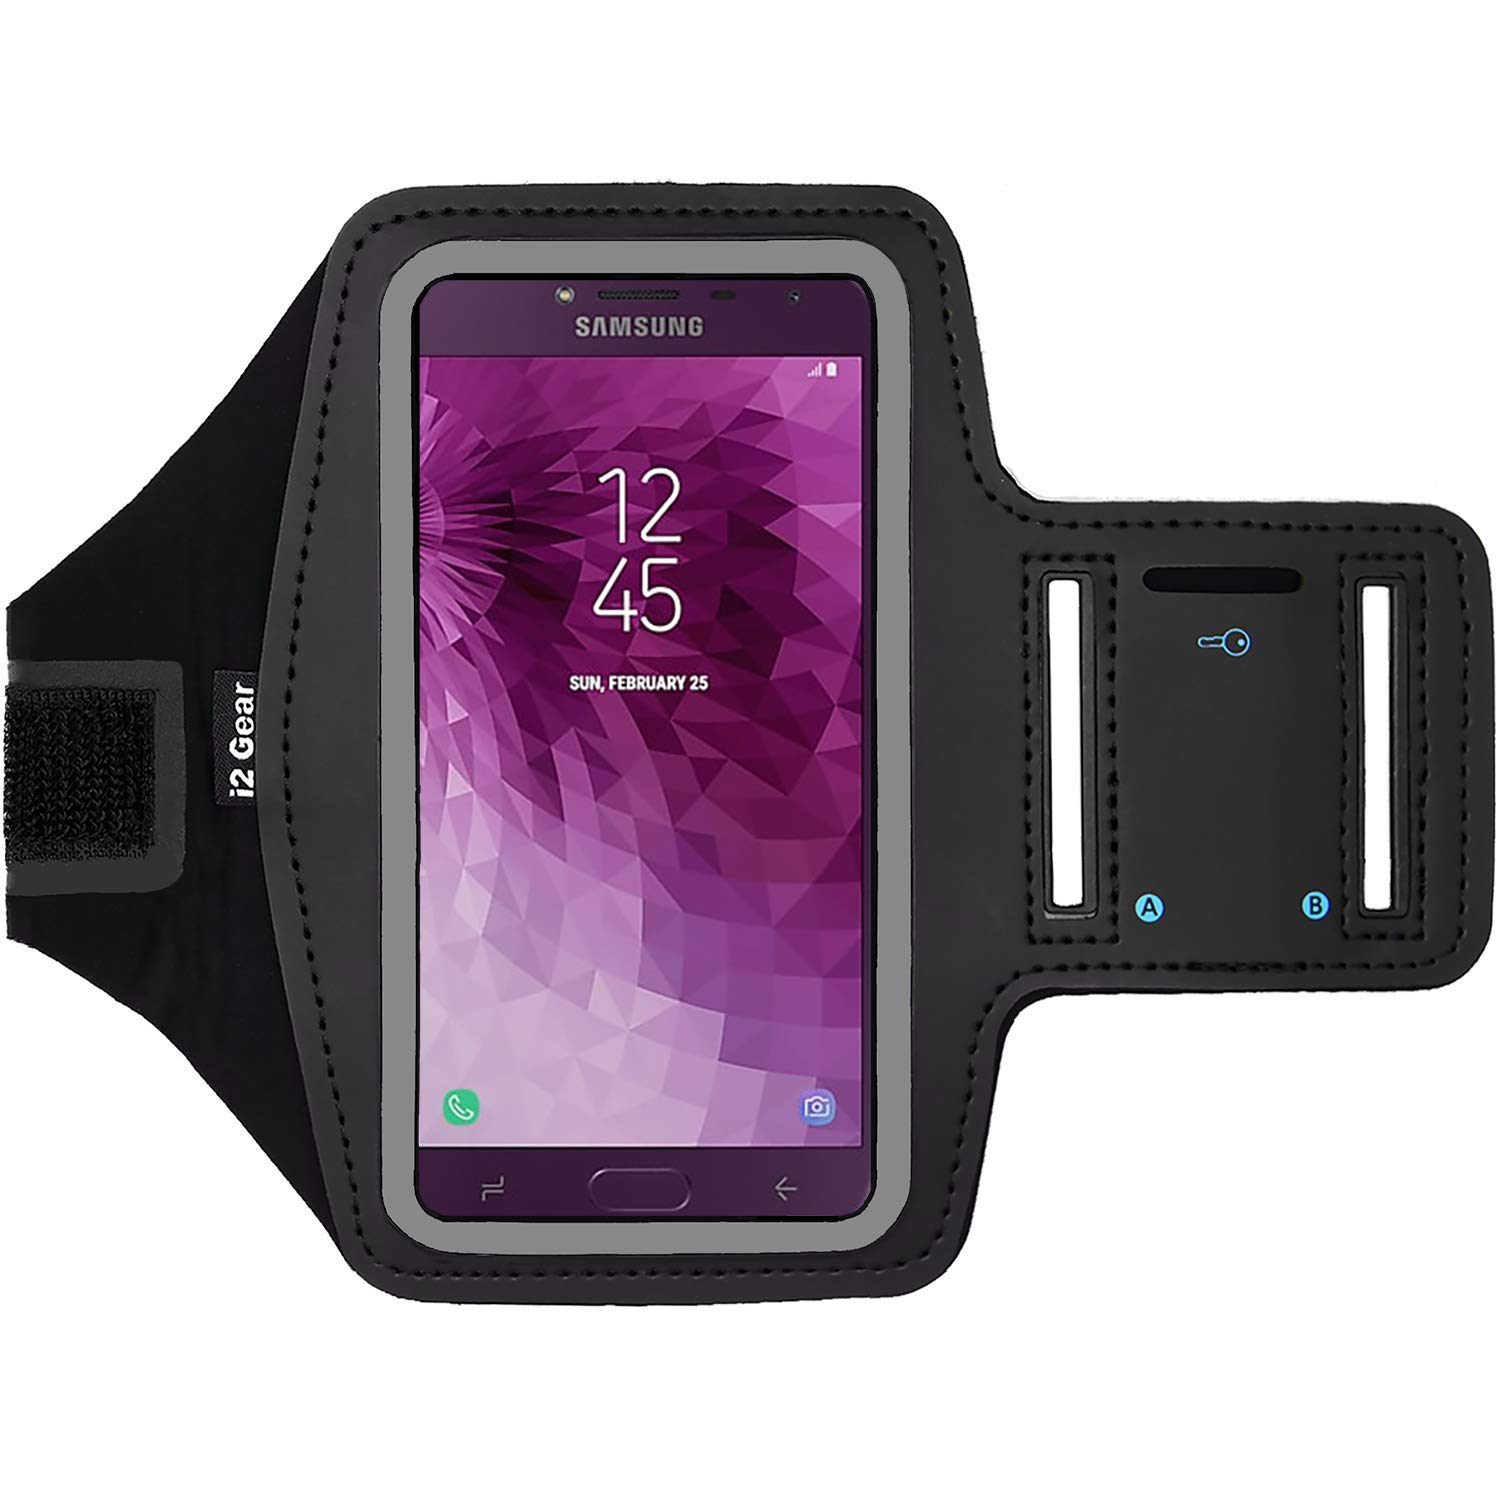 Arm Band Case for Samsung Galaxy J4 Workout Phone Holder with Adjustable Strap Black i2 Gear Fitness Cell Phone Armband for Running Reflective Edge